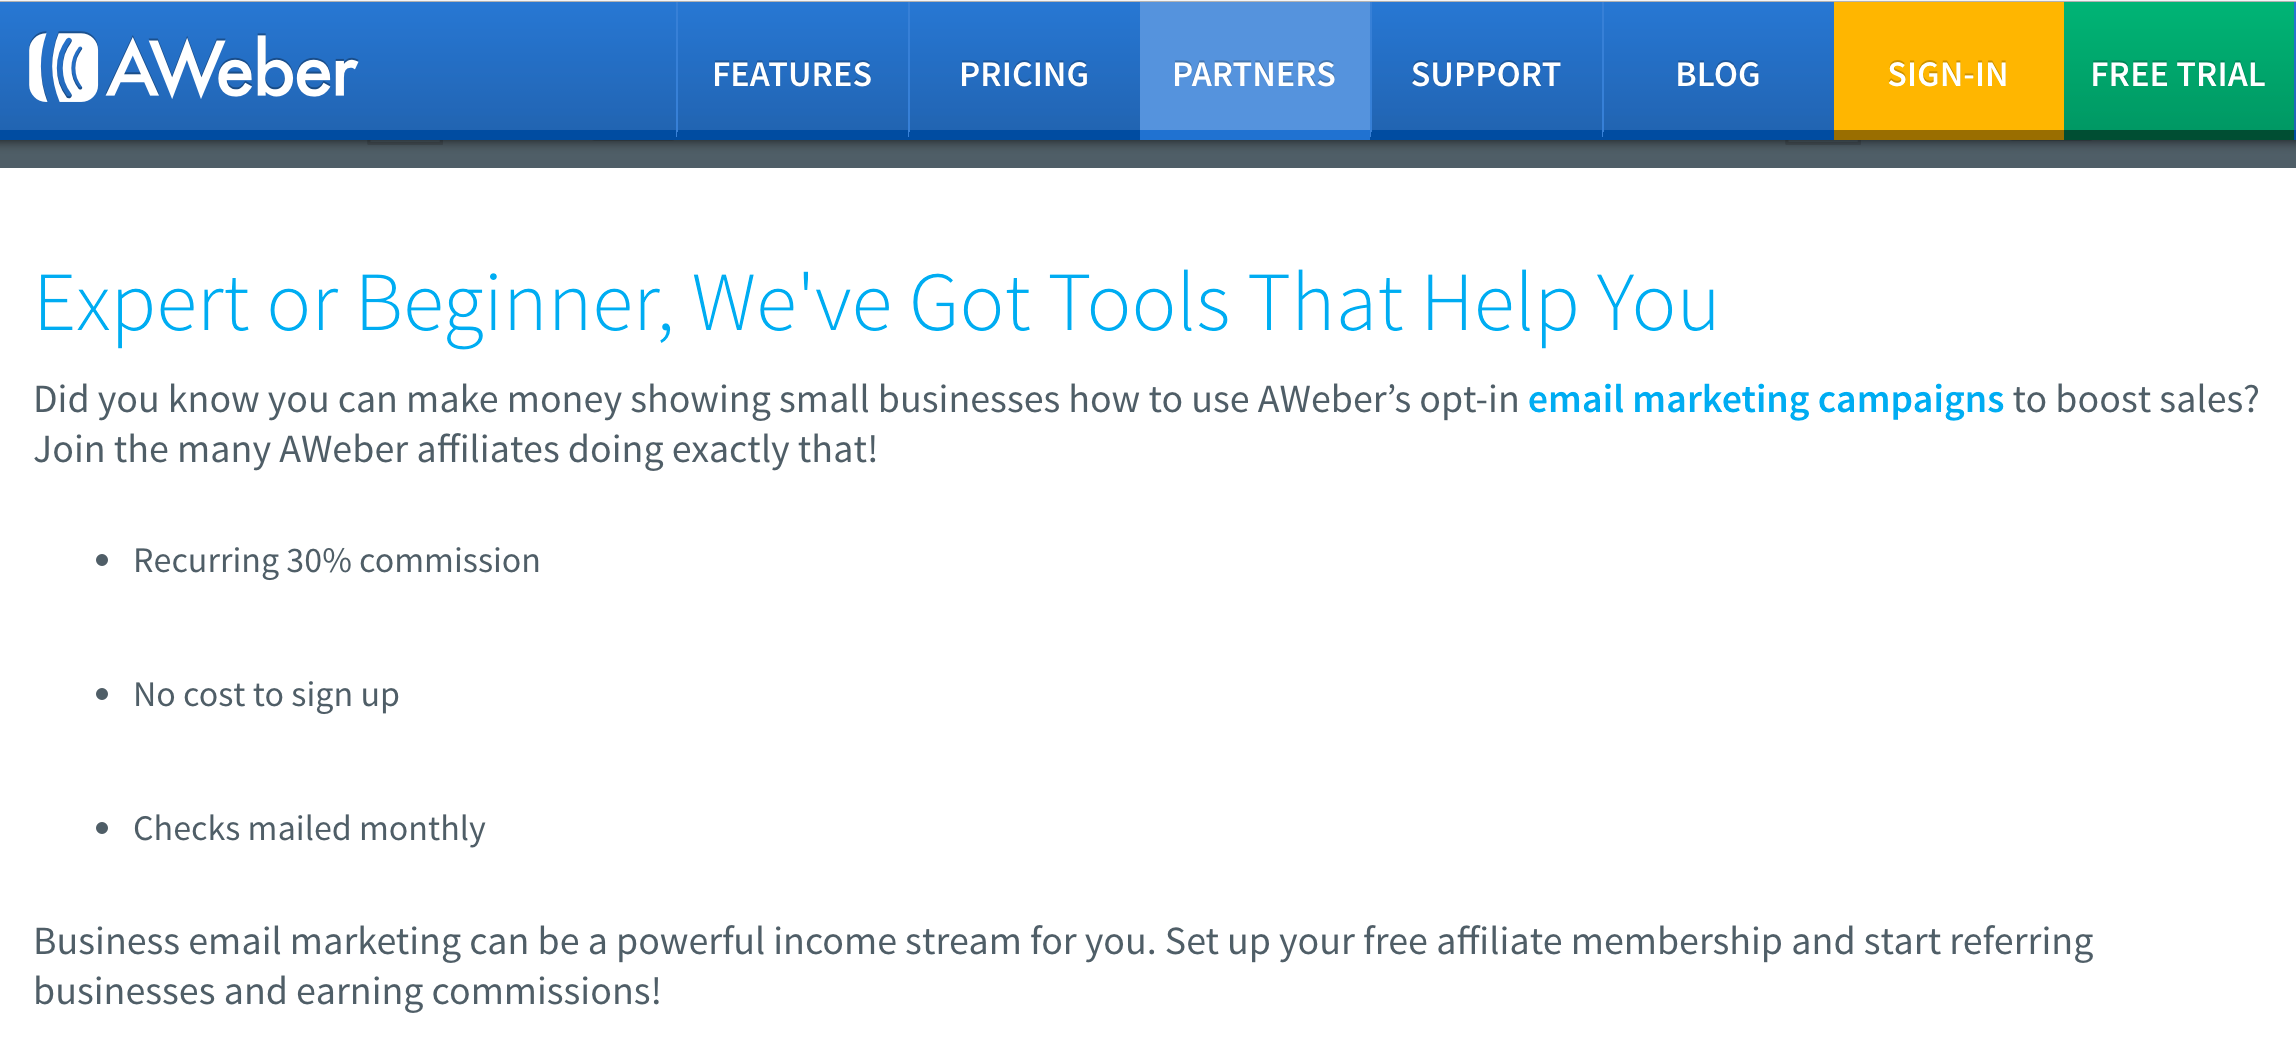 Aweber - Email Marketing Affiliate Programs